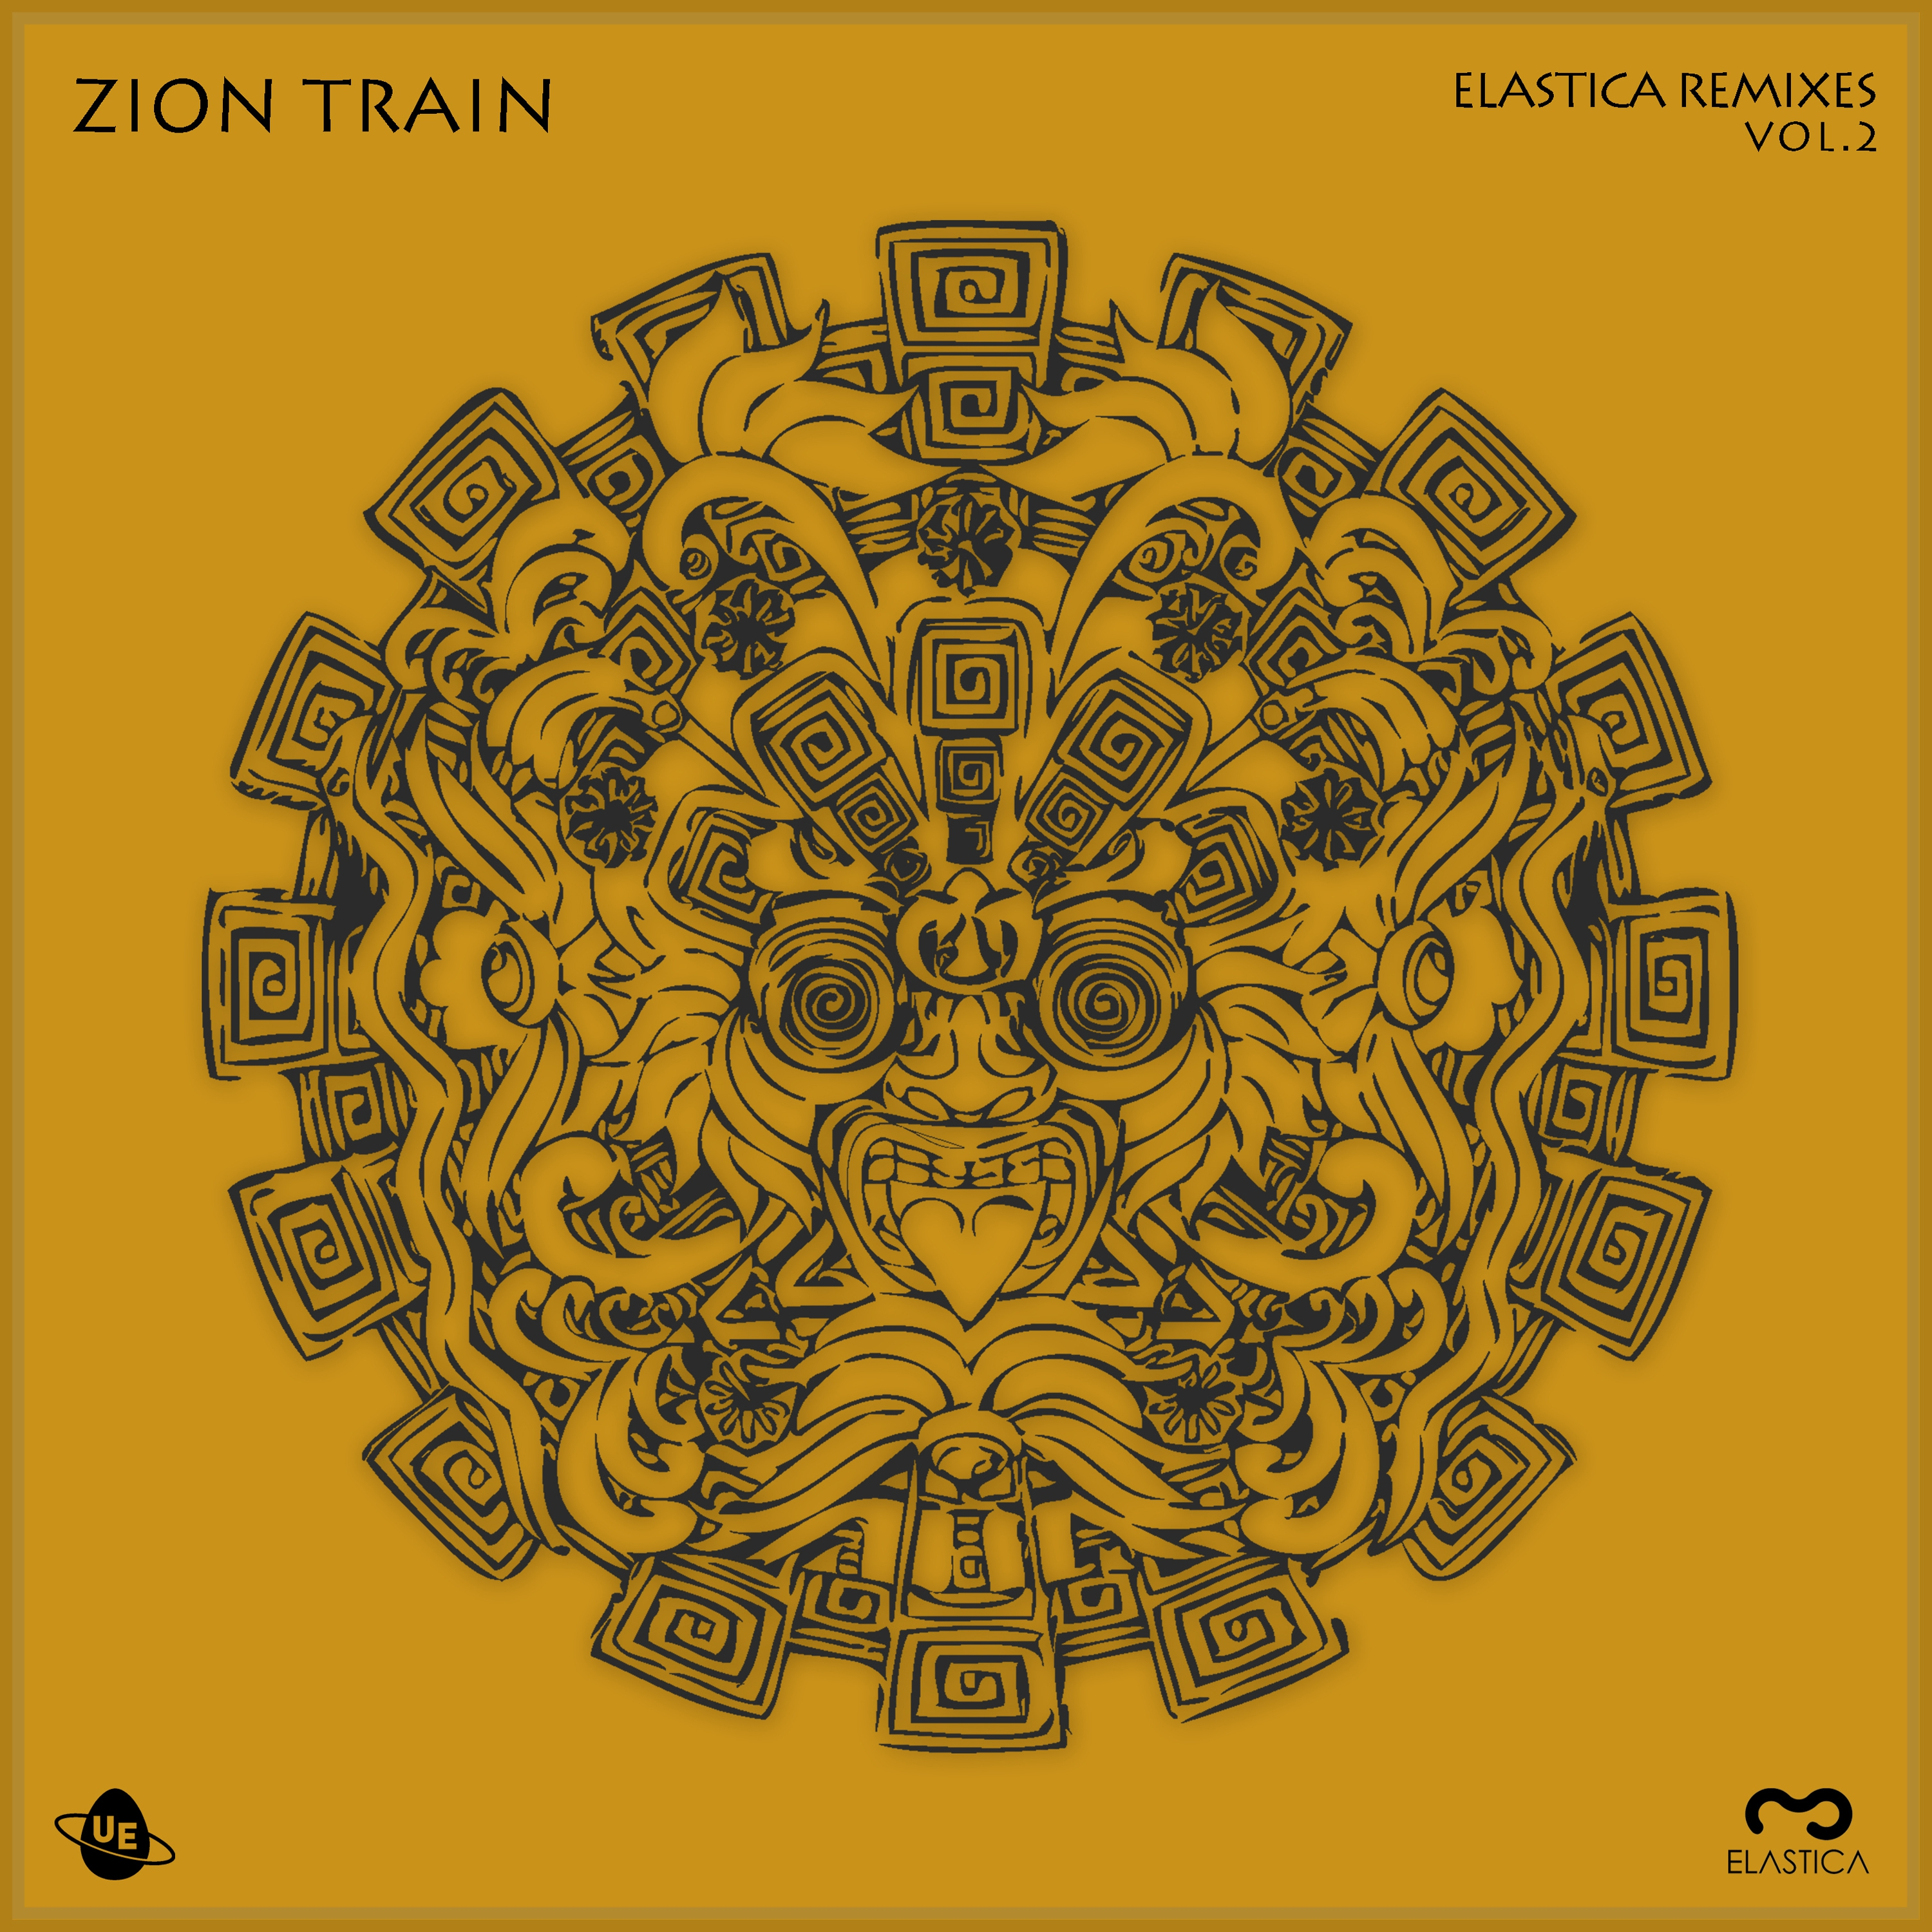 Zion Train - Tranquility Through Humility (Madplate Remix)